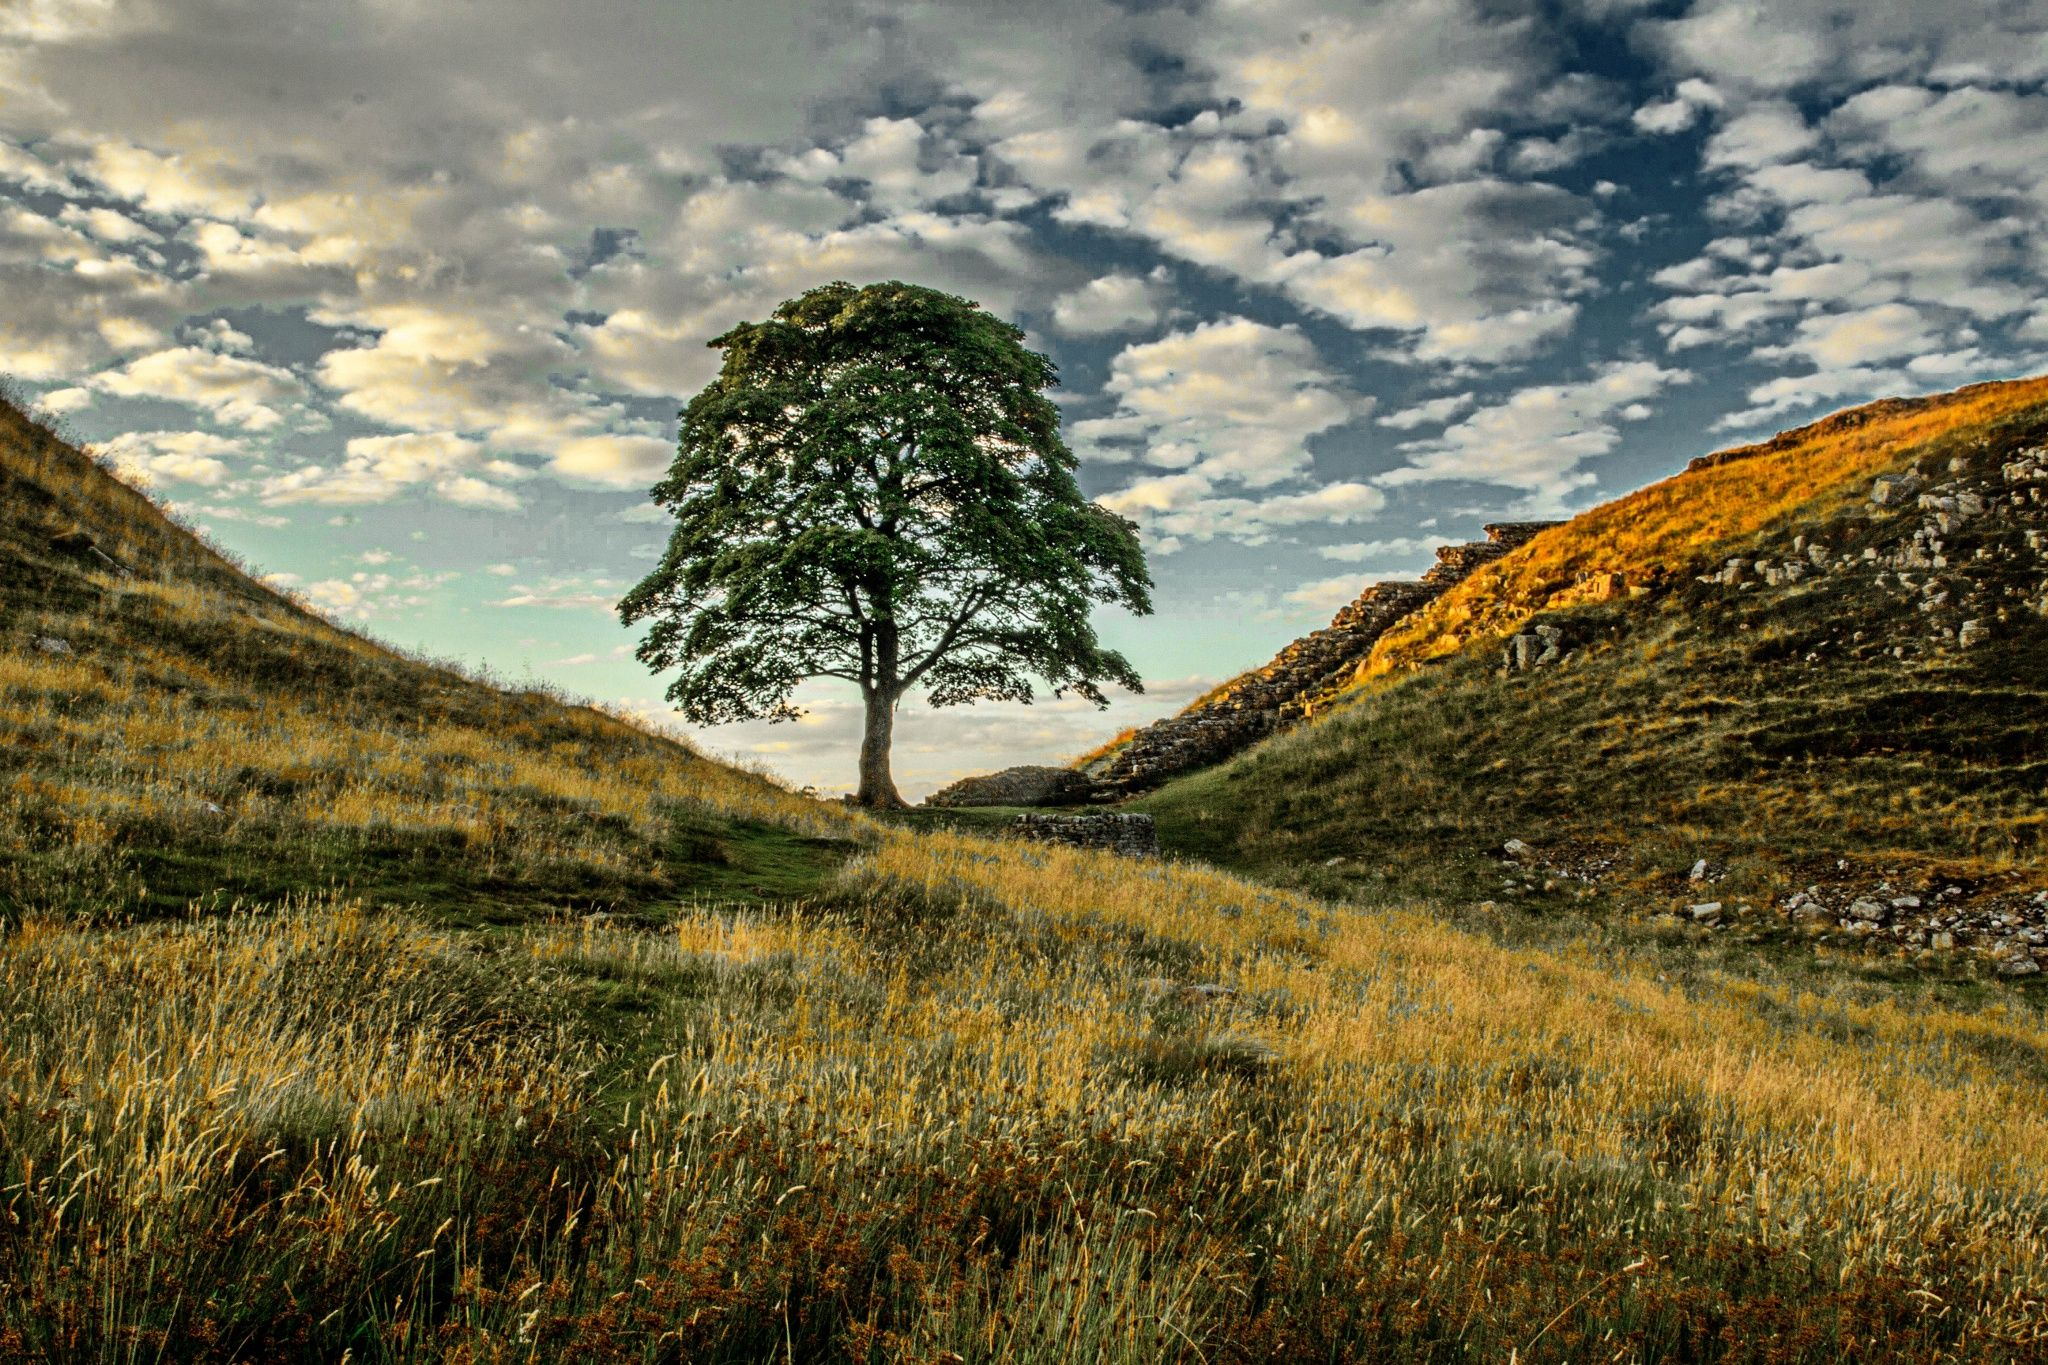 Sycamore by Teresa Mazur on 500px